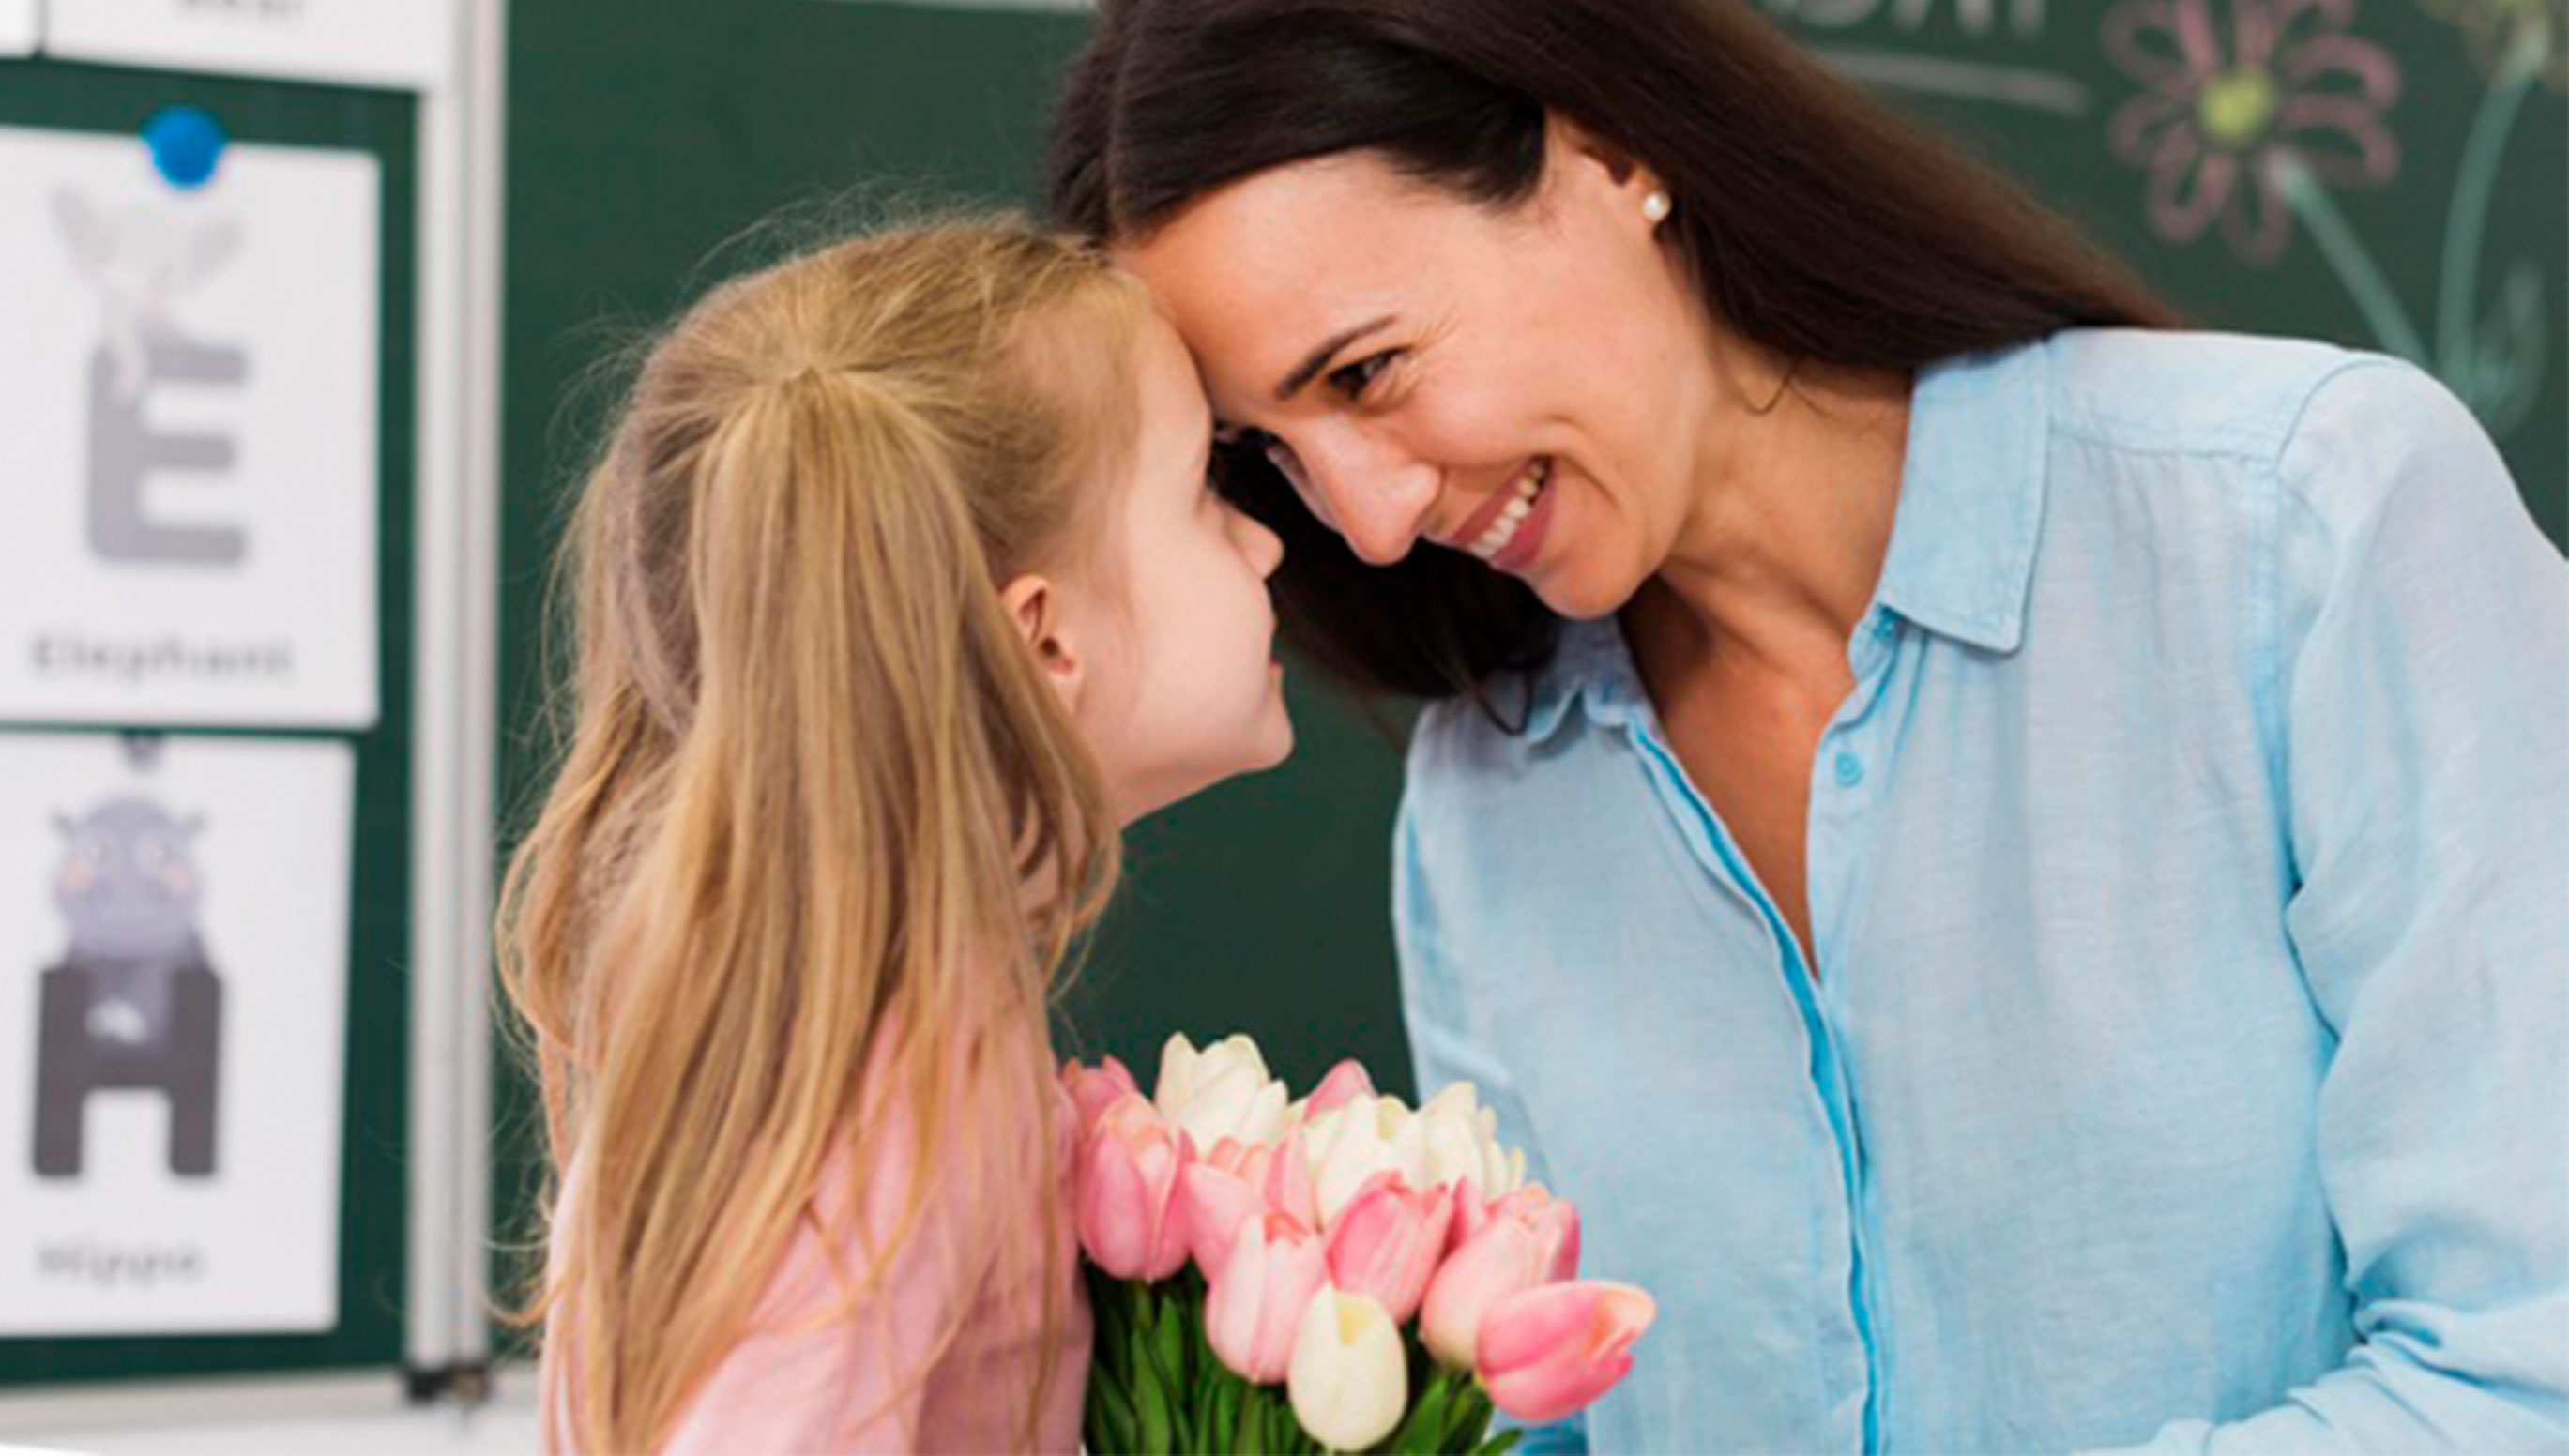 HHow to Say Thank You Properly with Flowers this Teacher's Day